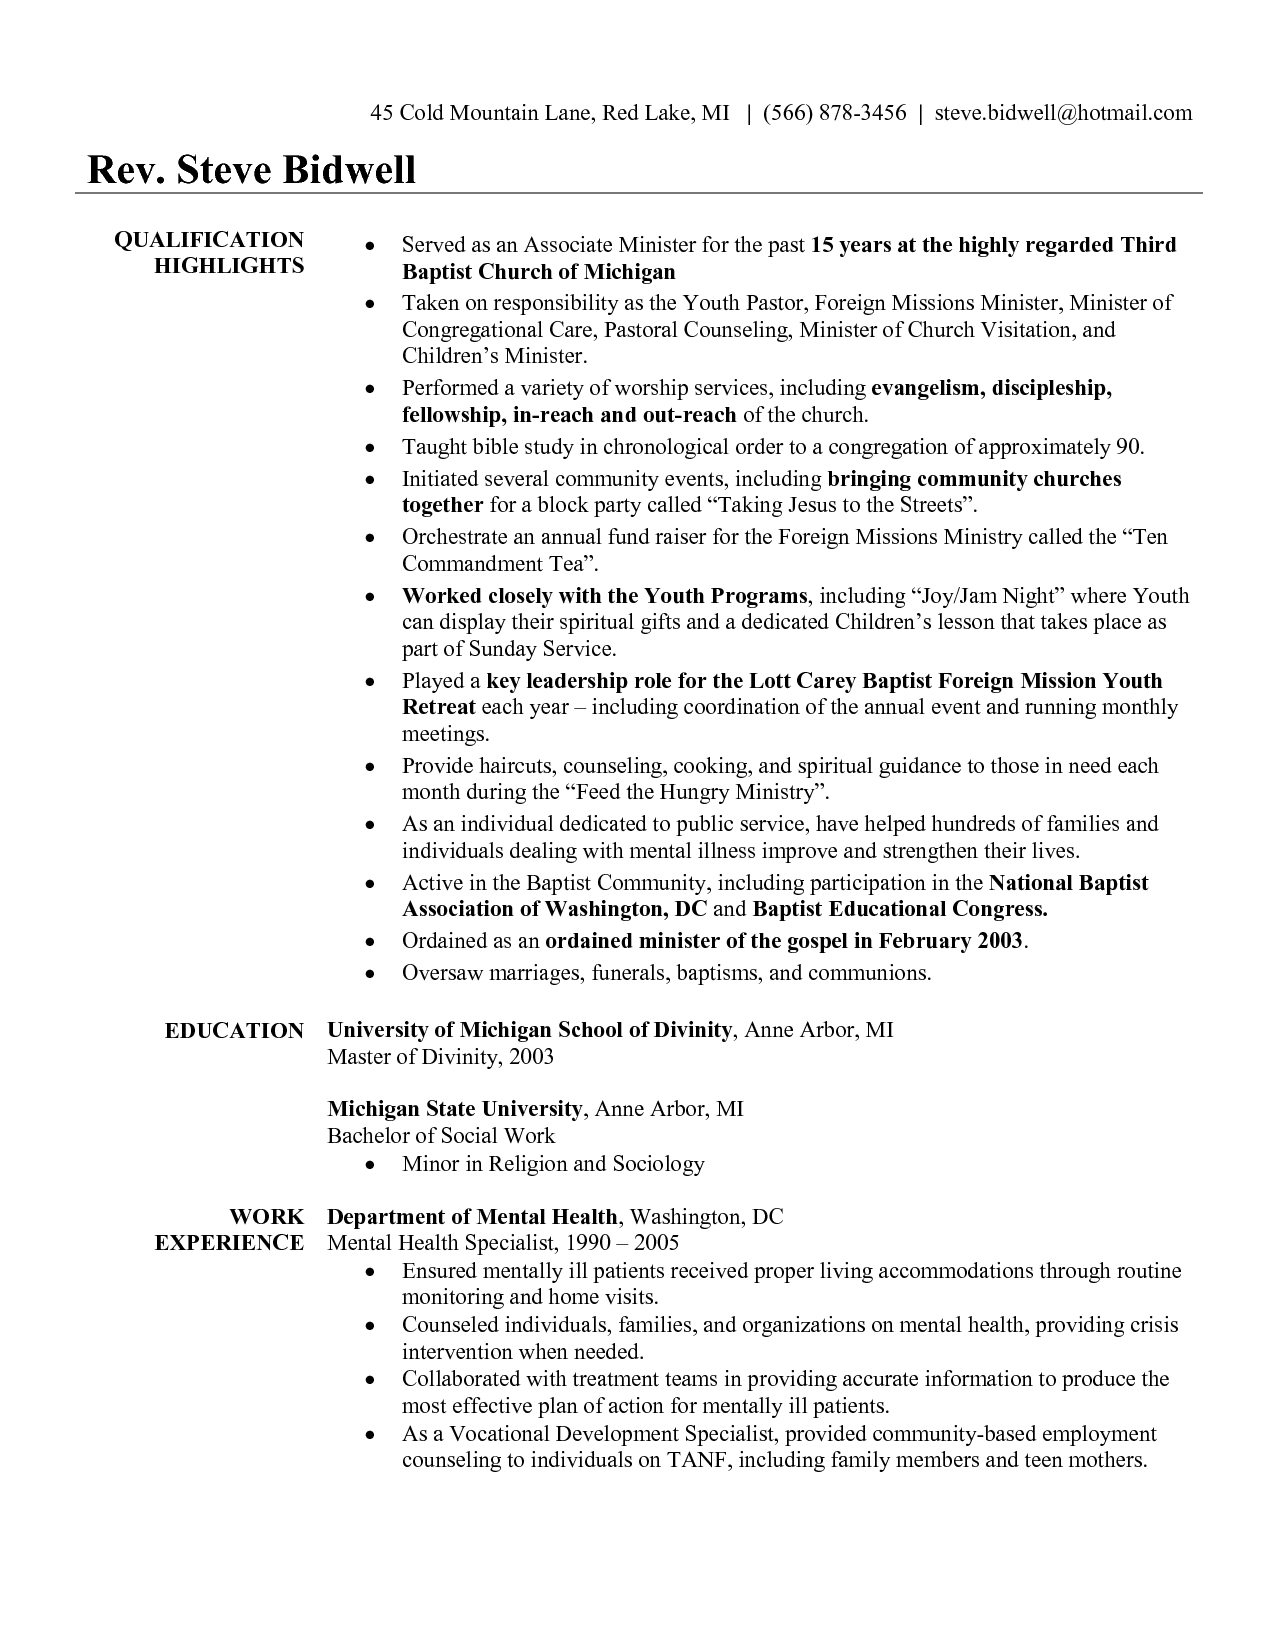 Resume Templates Youth Central Resume Templates Resume Examples Resume Templates Resume Template